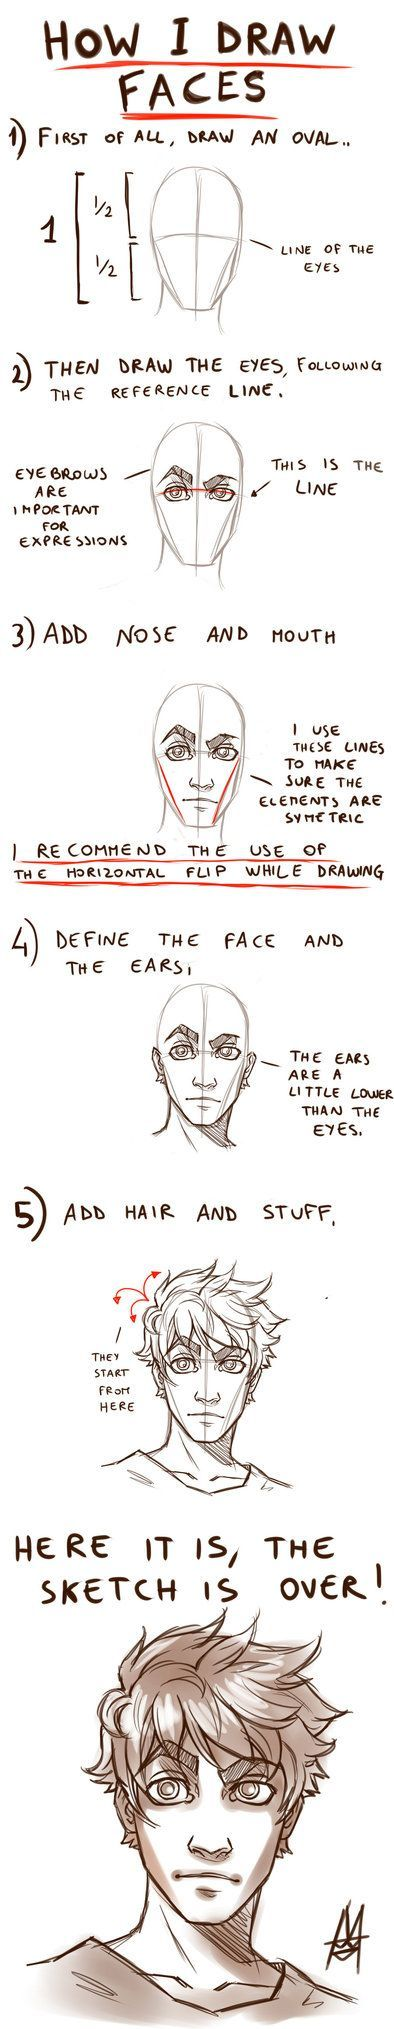 Tutorial HOW TO DRAW A FACE by MauroIllustrator on deviantART: